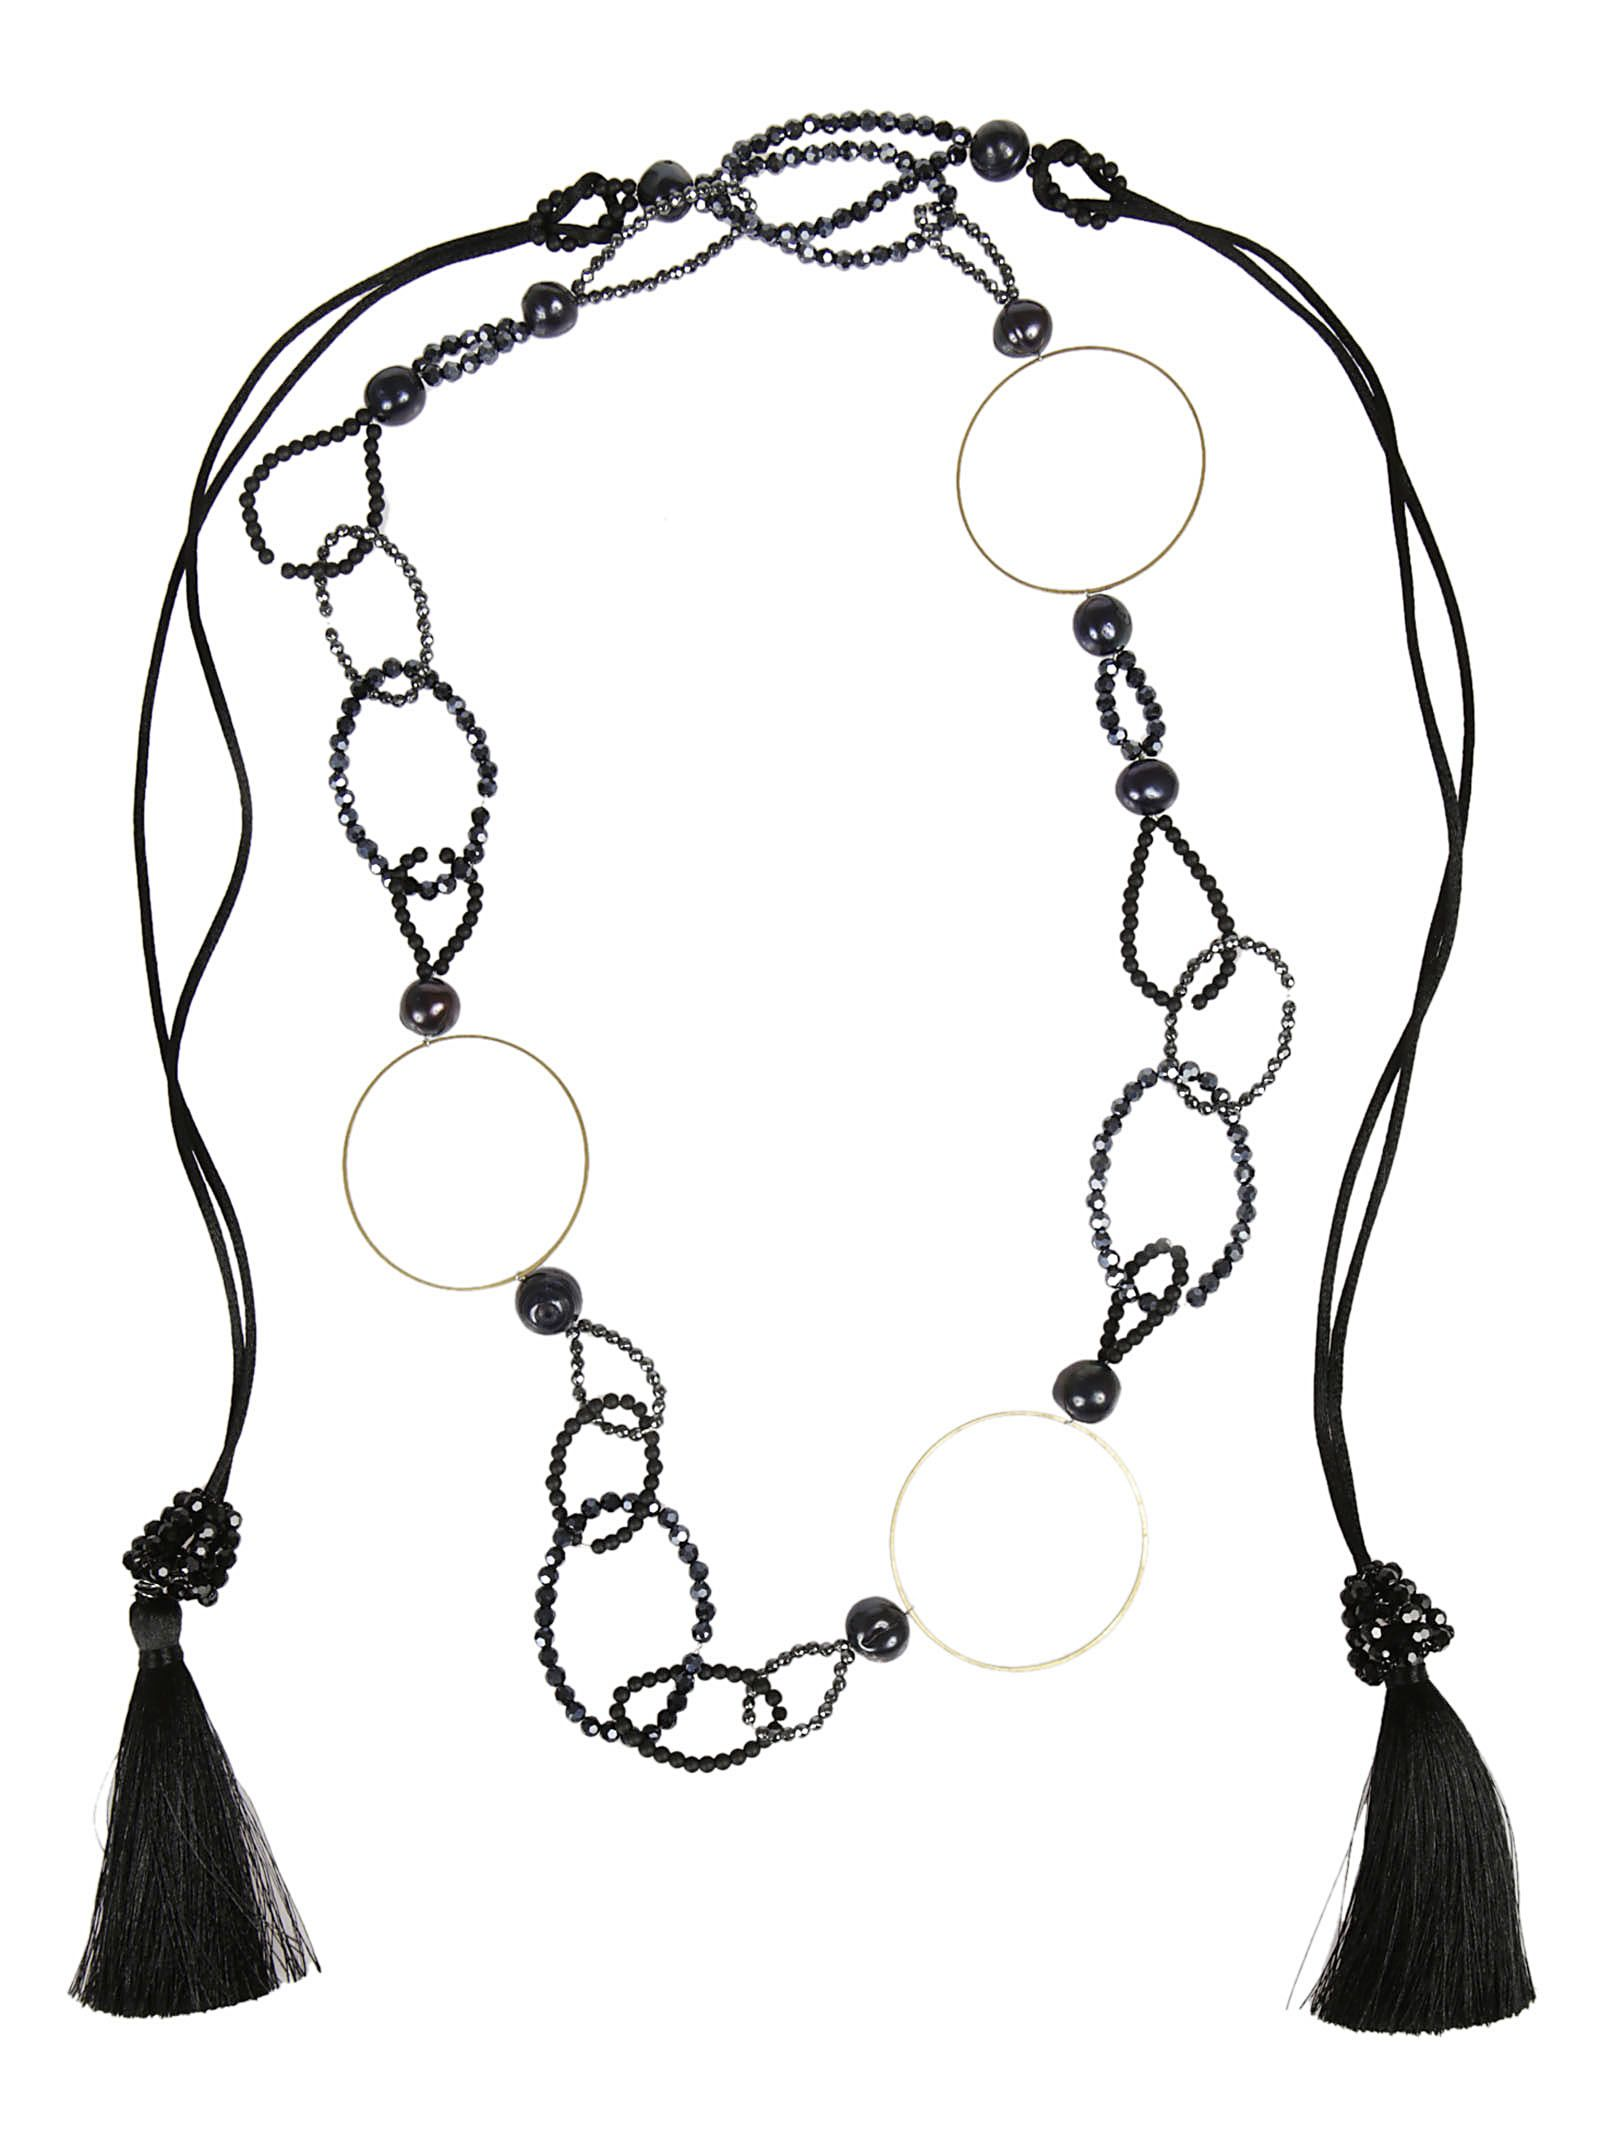 bead and ring long necklace - Black Night Market